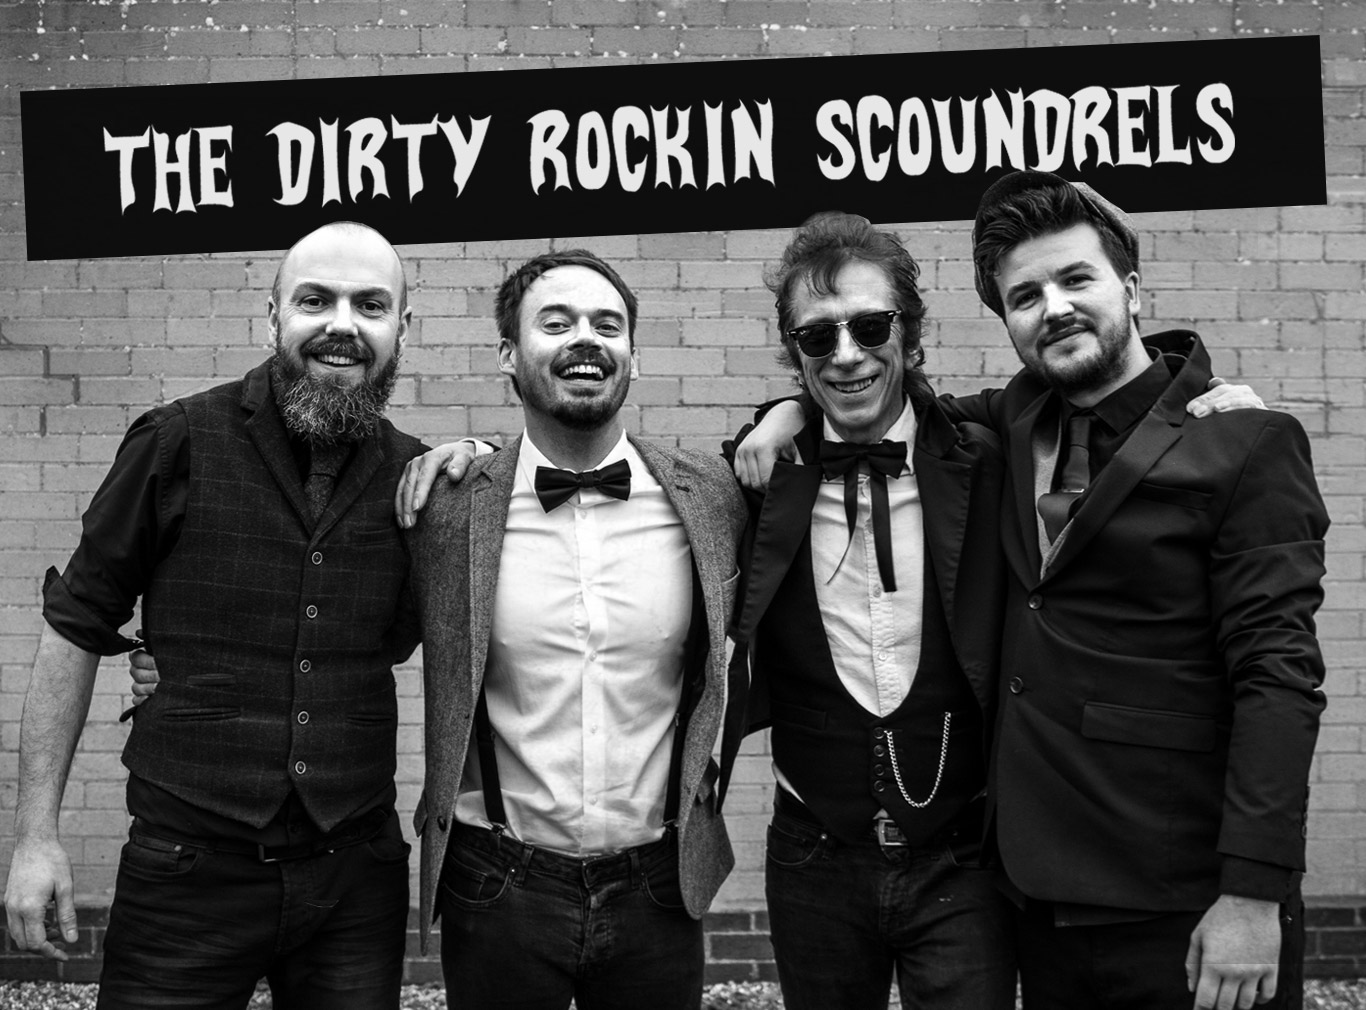 the-dirty-rockin-scoundrels-hero2